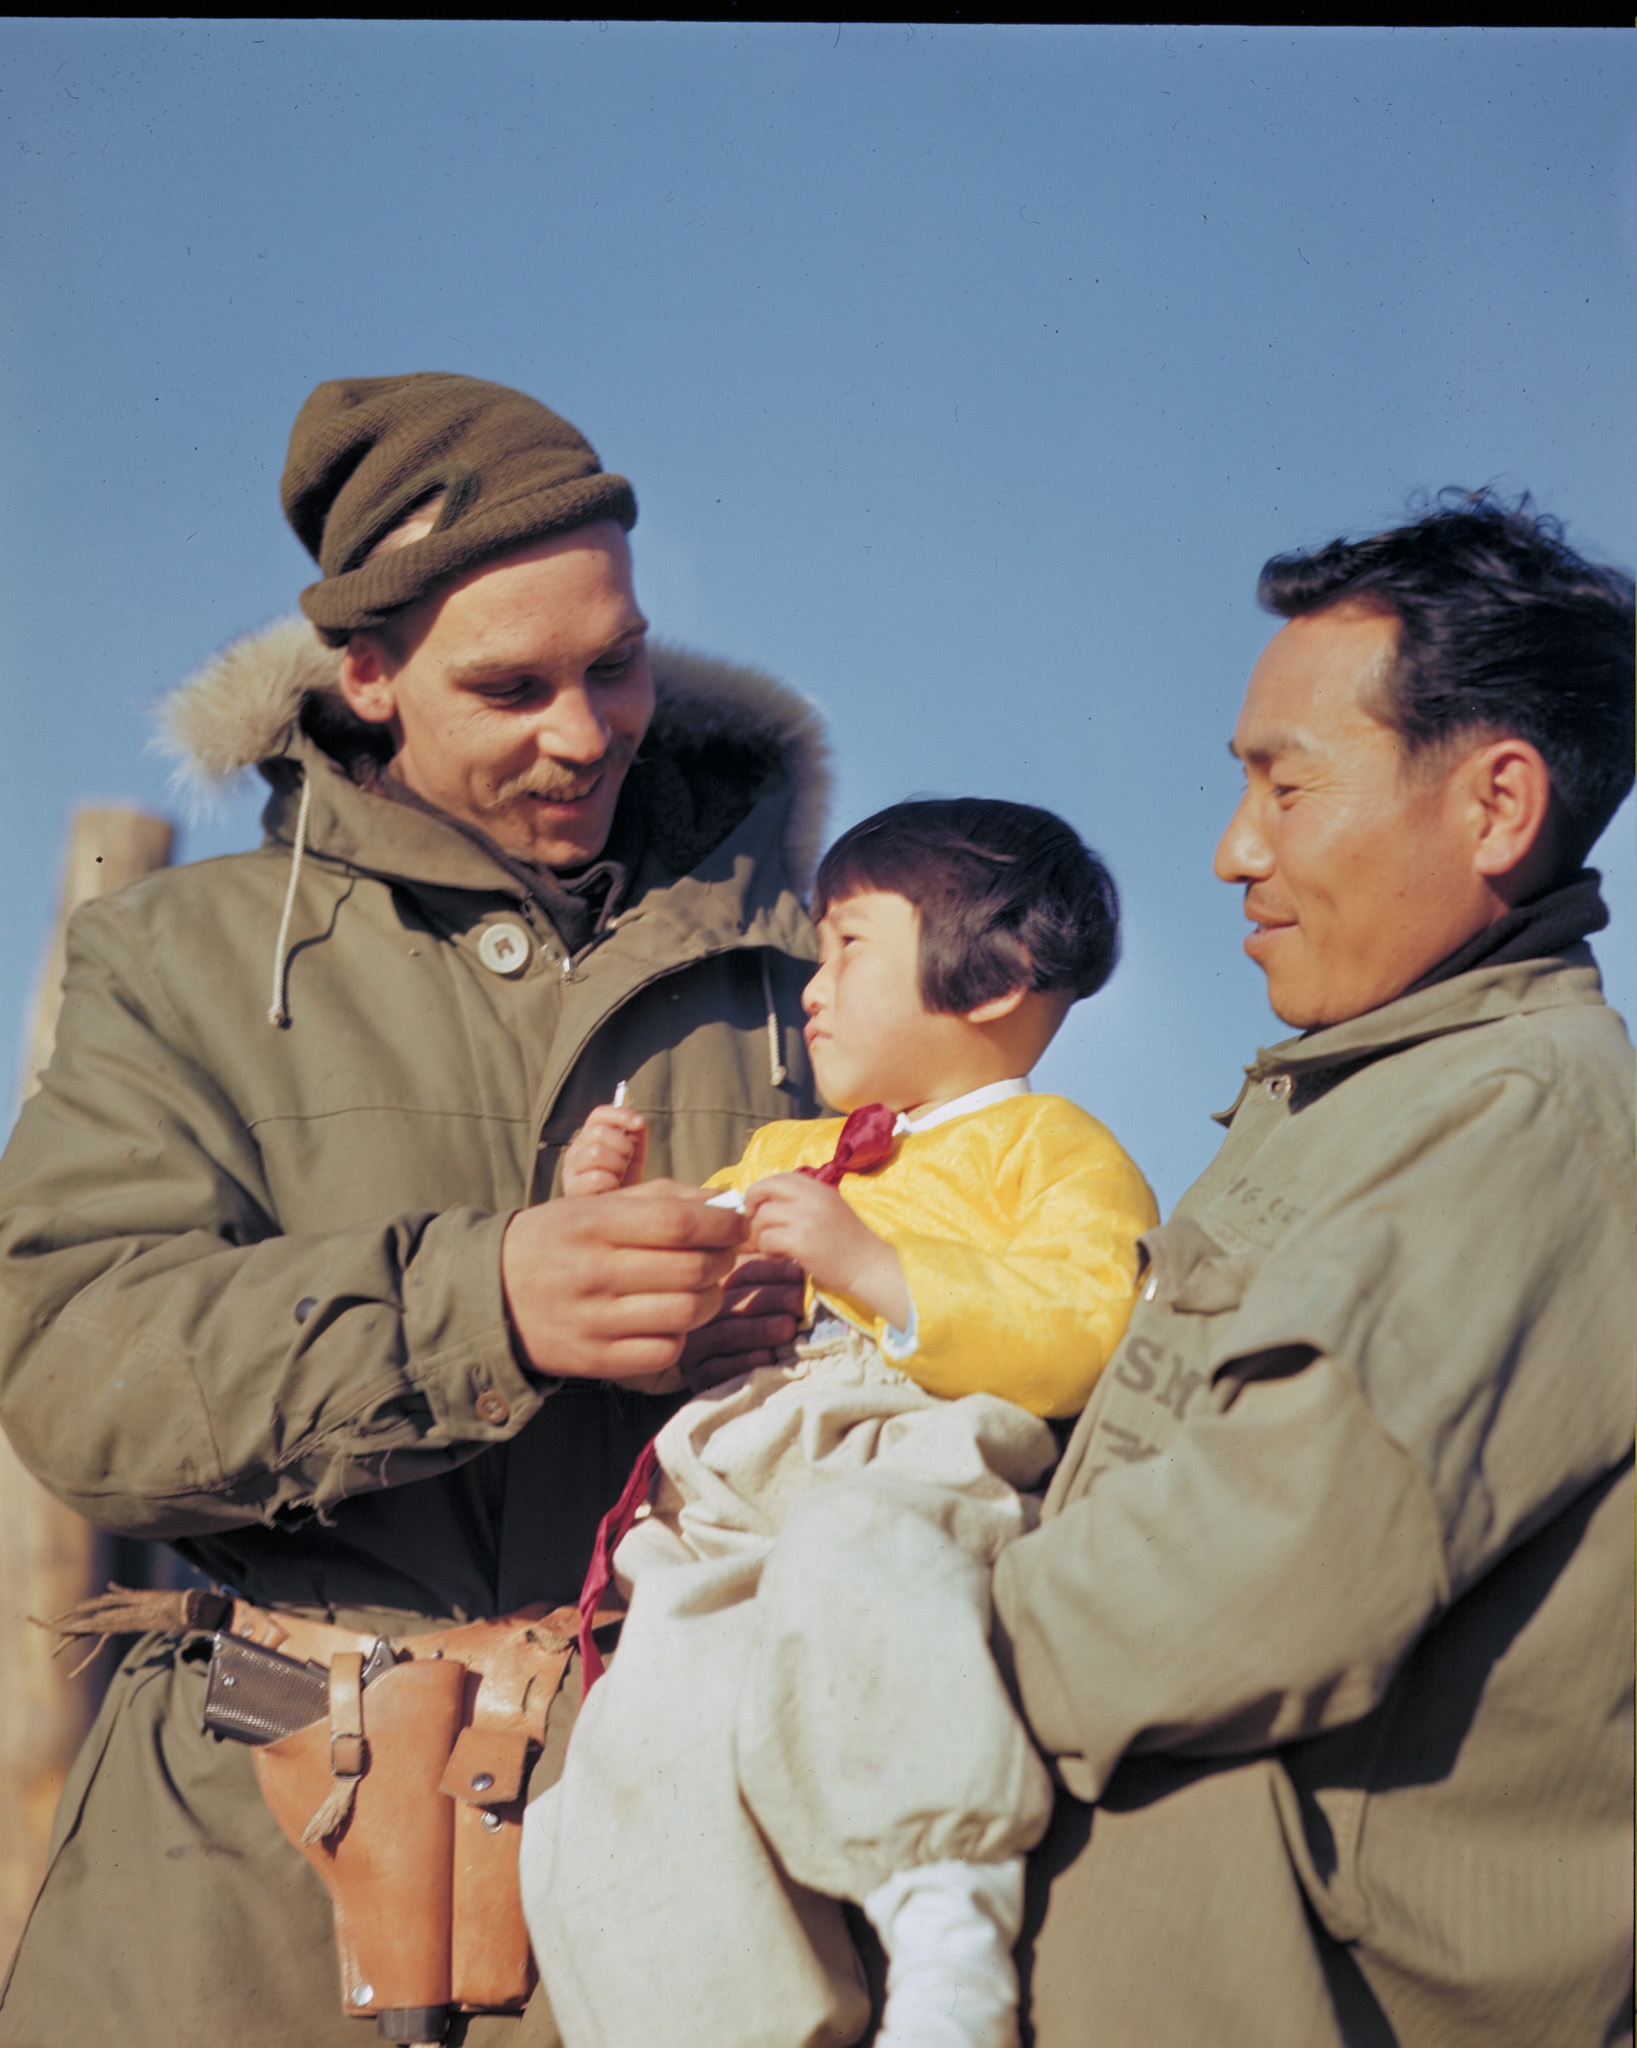 A soldier from 2nd Battalion, Princess Patricia's Canadian Light Infantry, gives sweets to a South Korean child. PHOTO: DND Archives